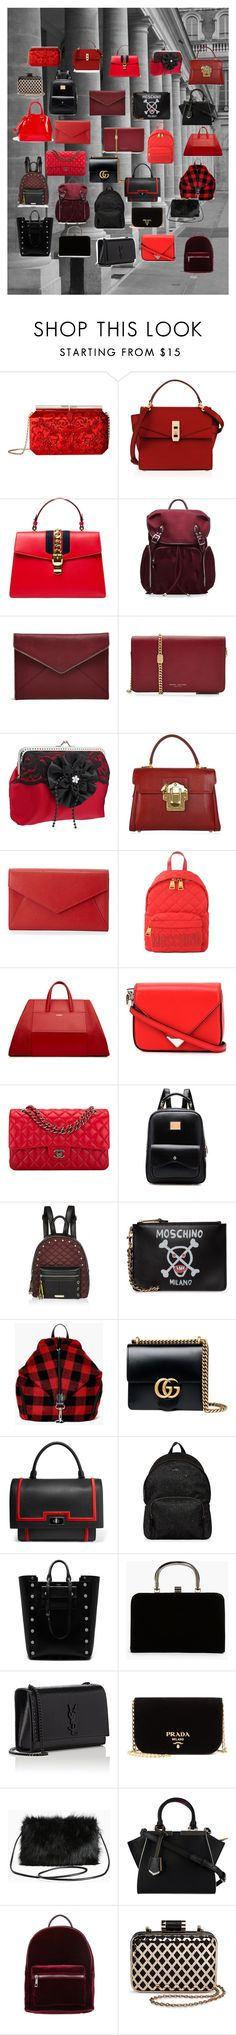 """""""RED&BLACK"""" by btg2001 ❤ liked on Polyvore featuring Oscar de la Renta, Henri Bendel, Gucci, M Z Wallace, Rebecca Minkoff, Marc Jacobs, Dolce&Gabbana, Neiman Marcus, Moschino and Alexander Wang"""